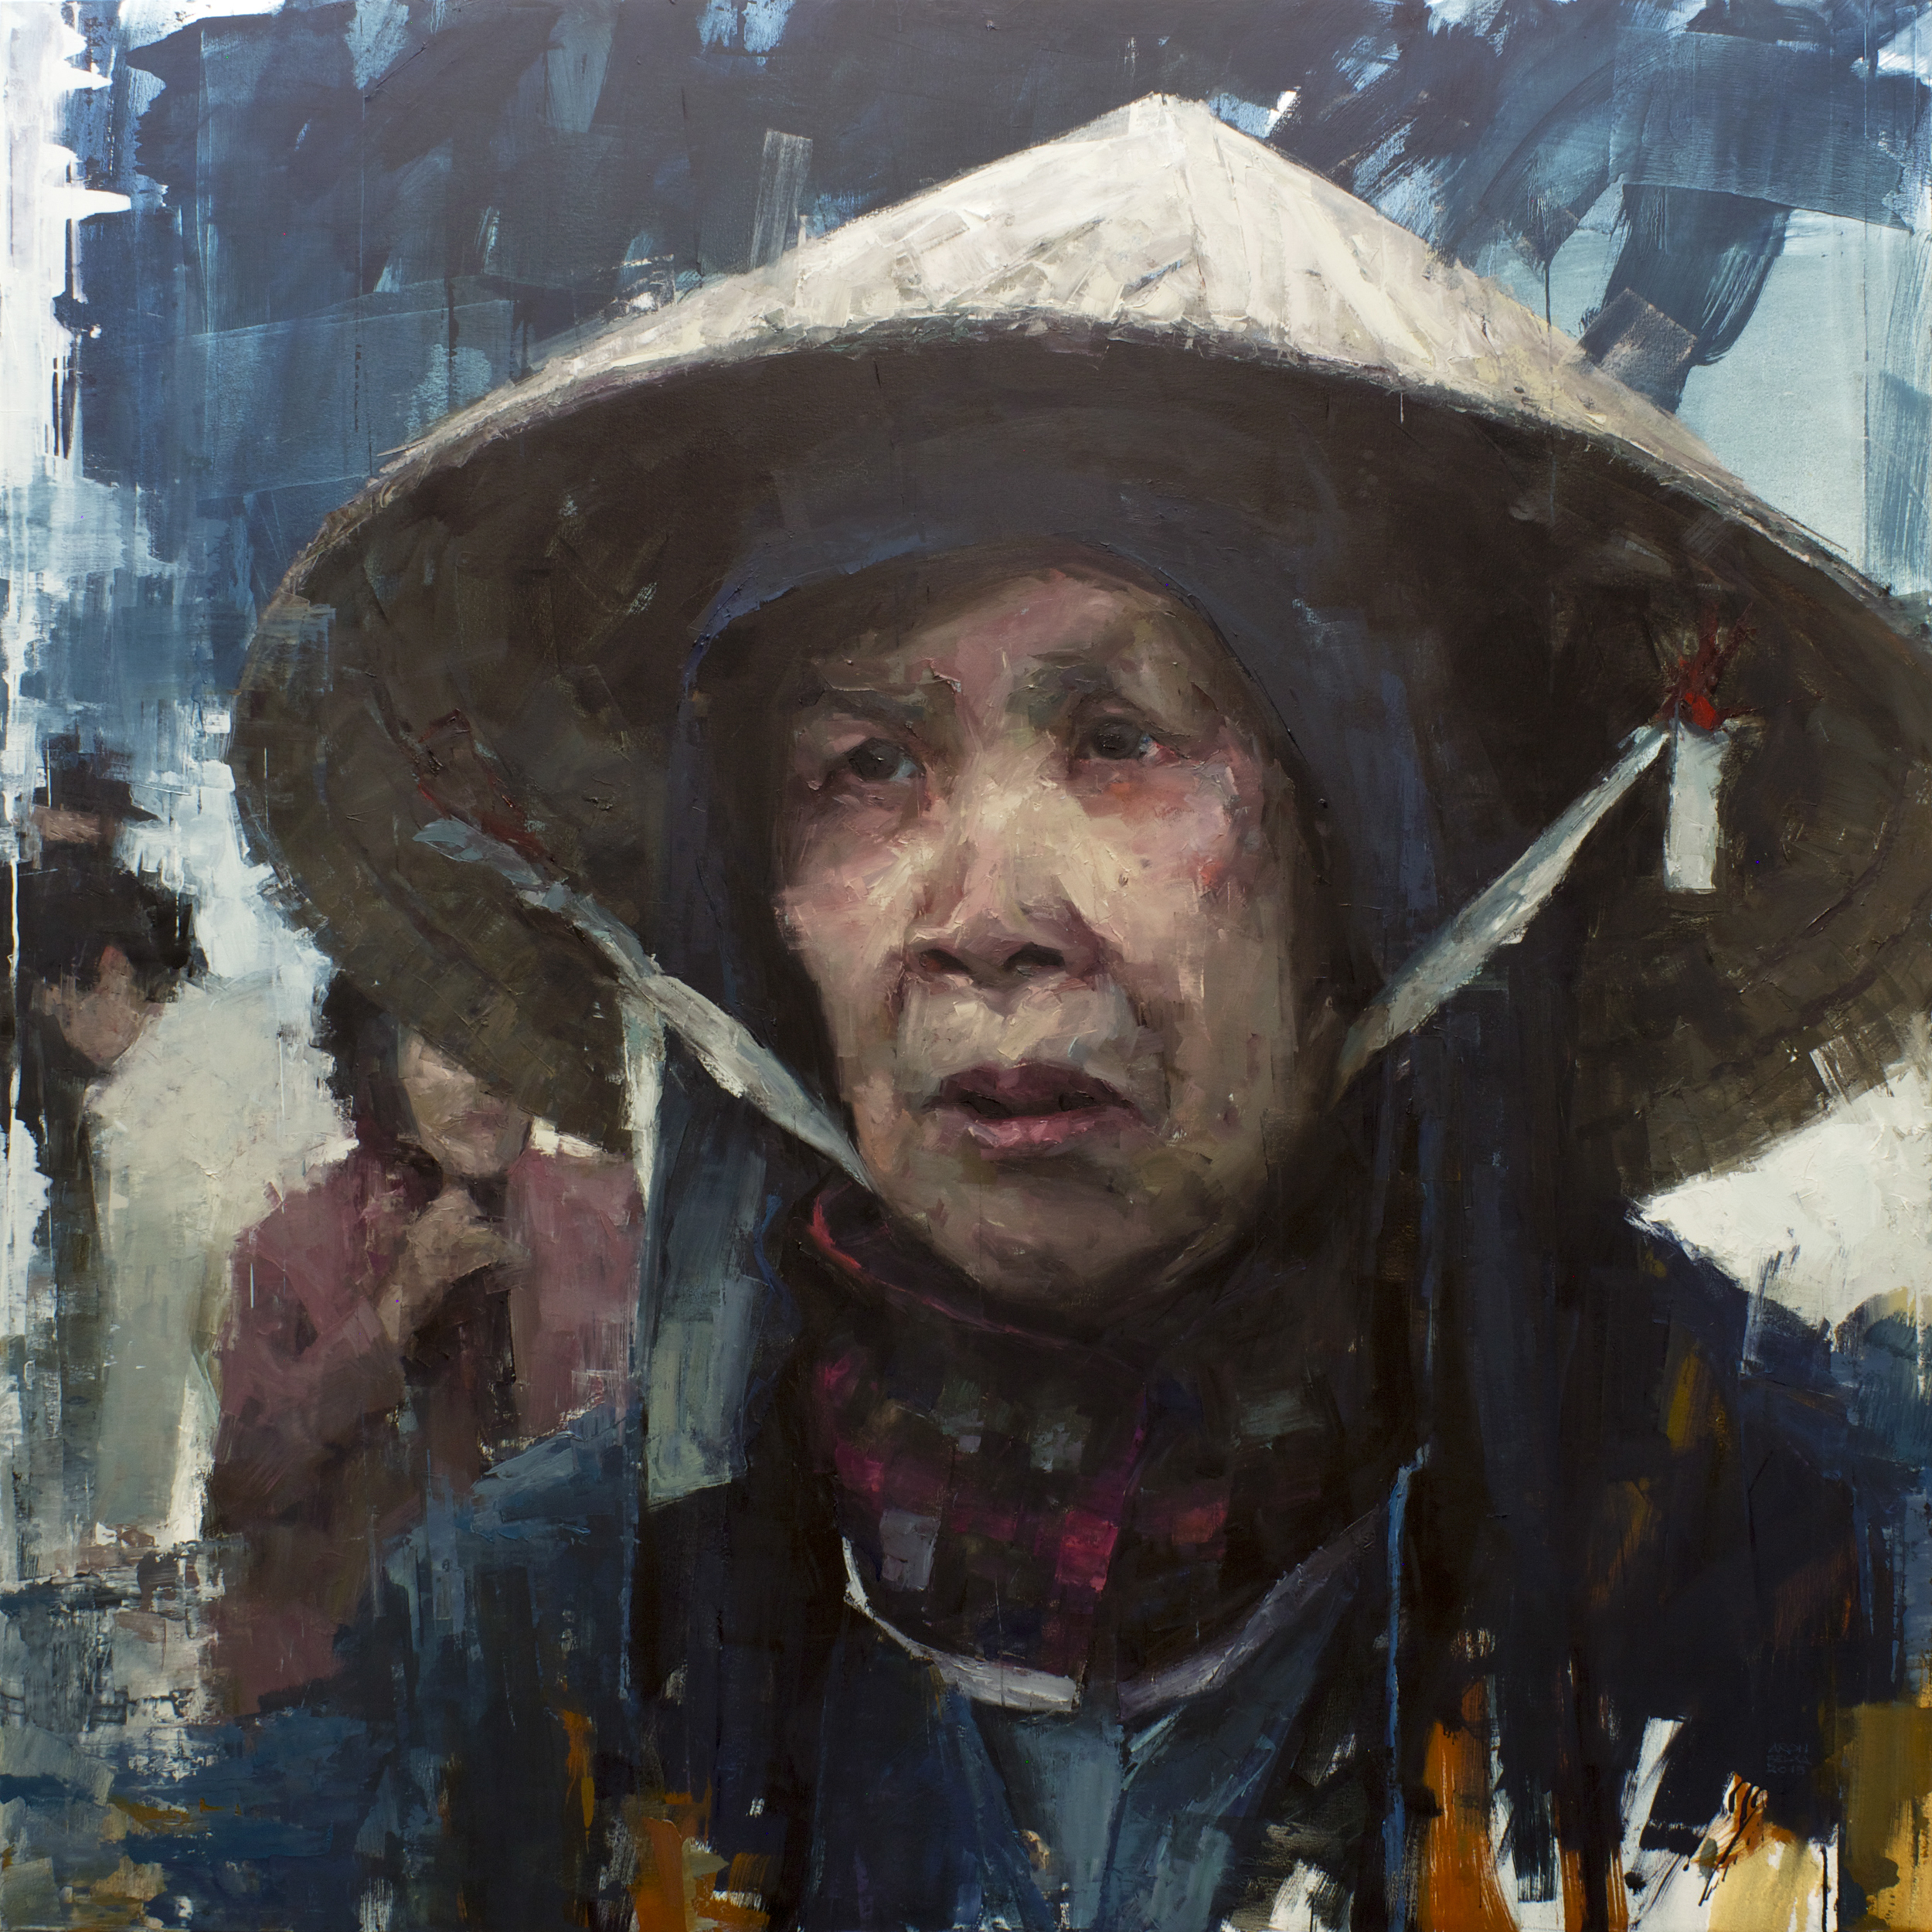 Market Woman    2015 72 x 72 inches   oil on canvas